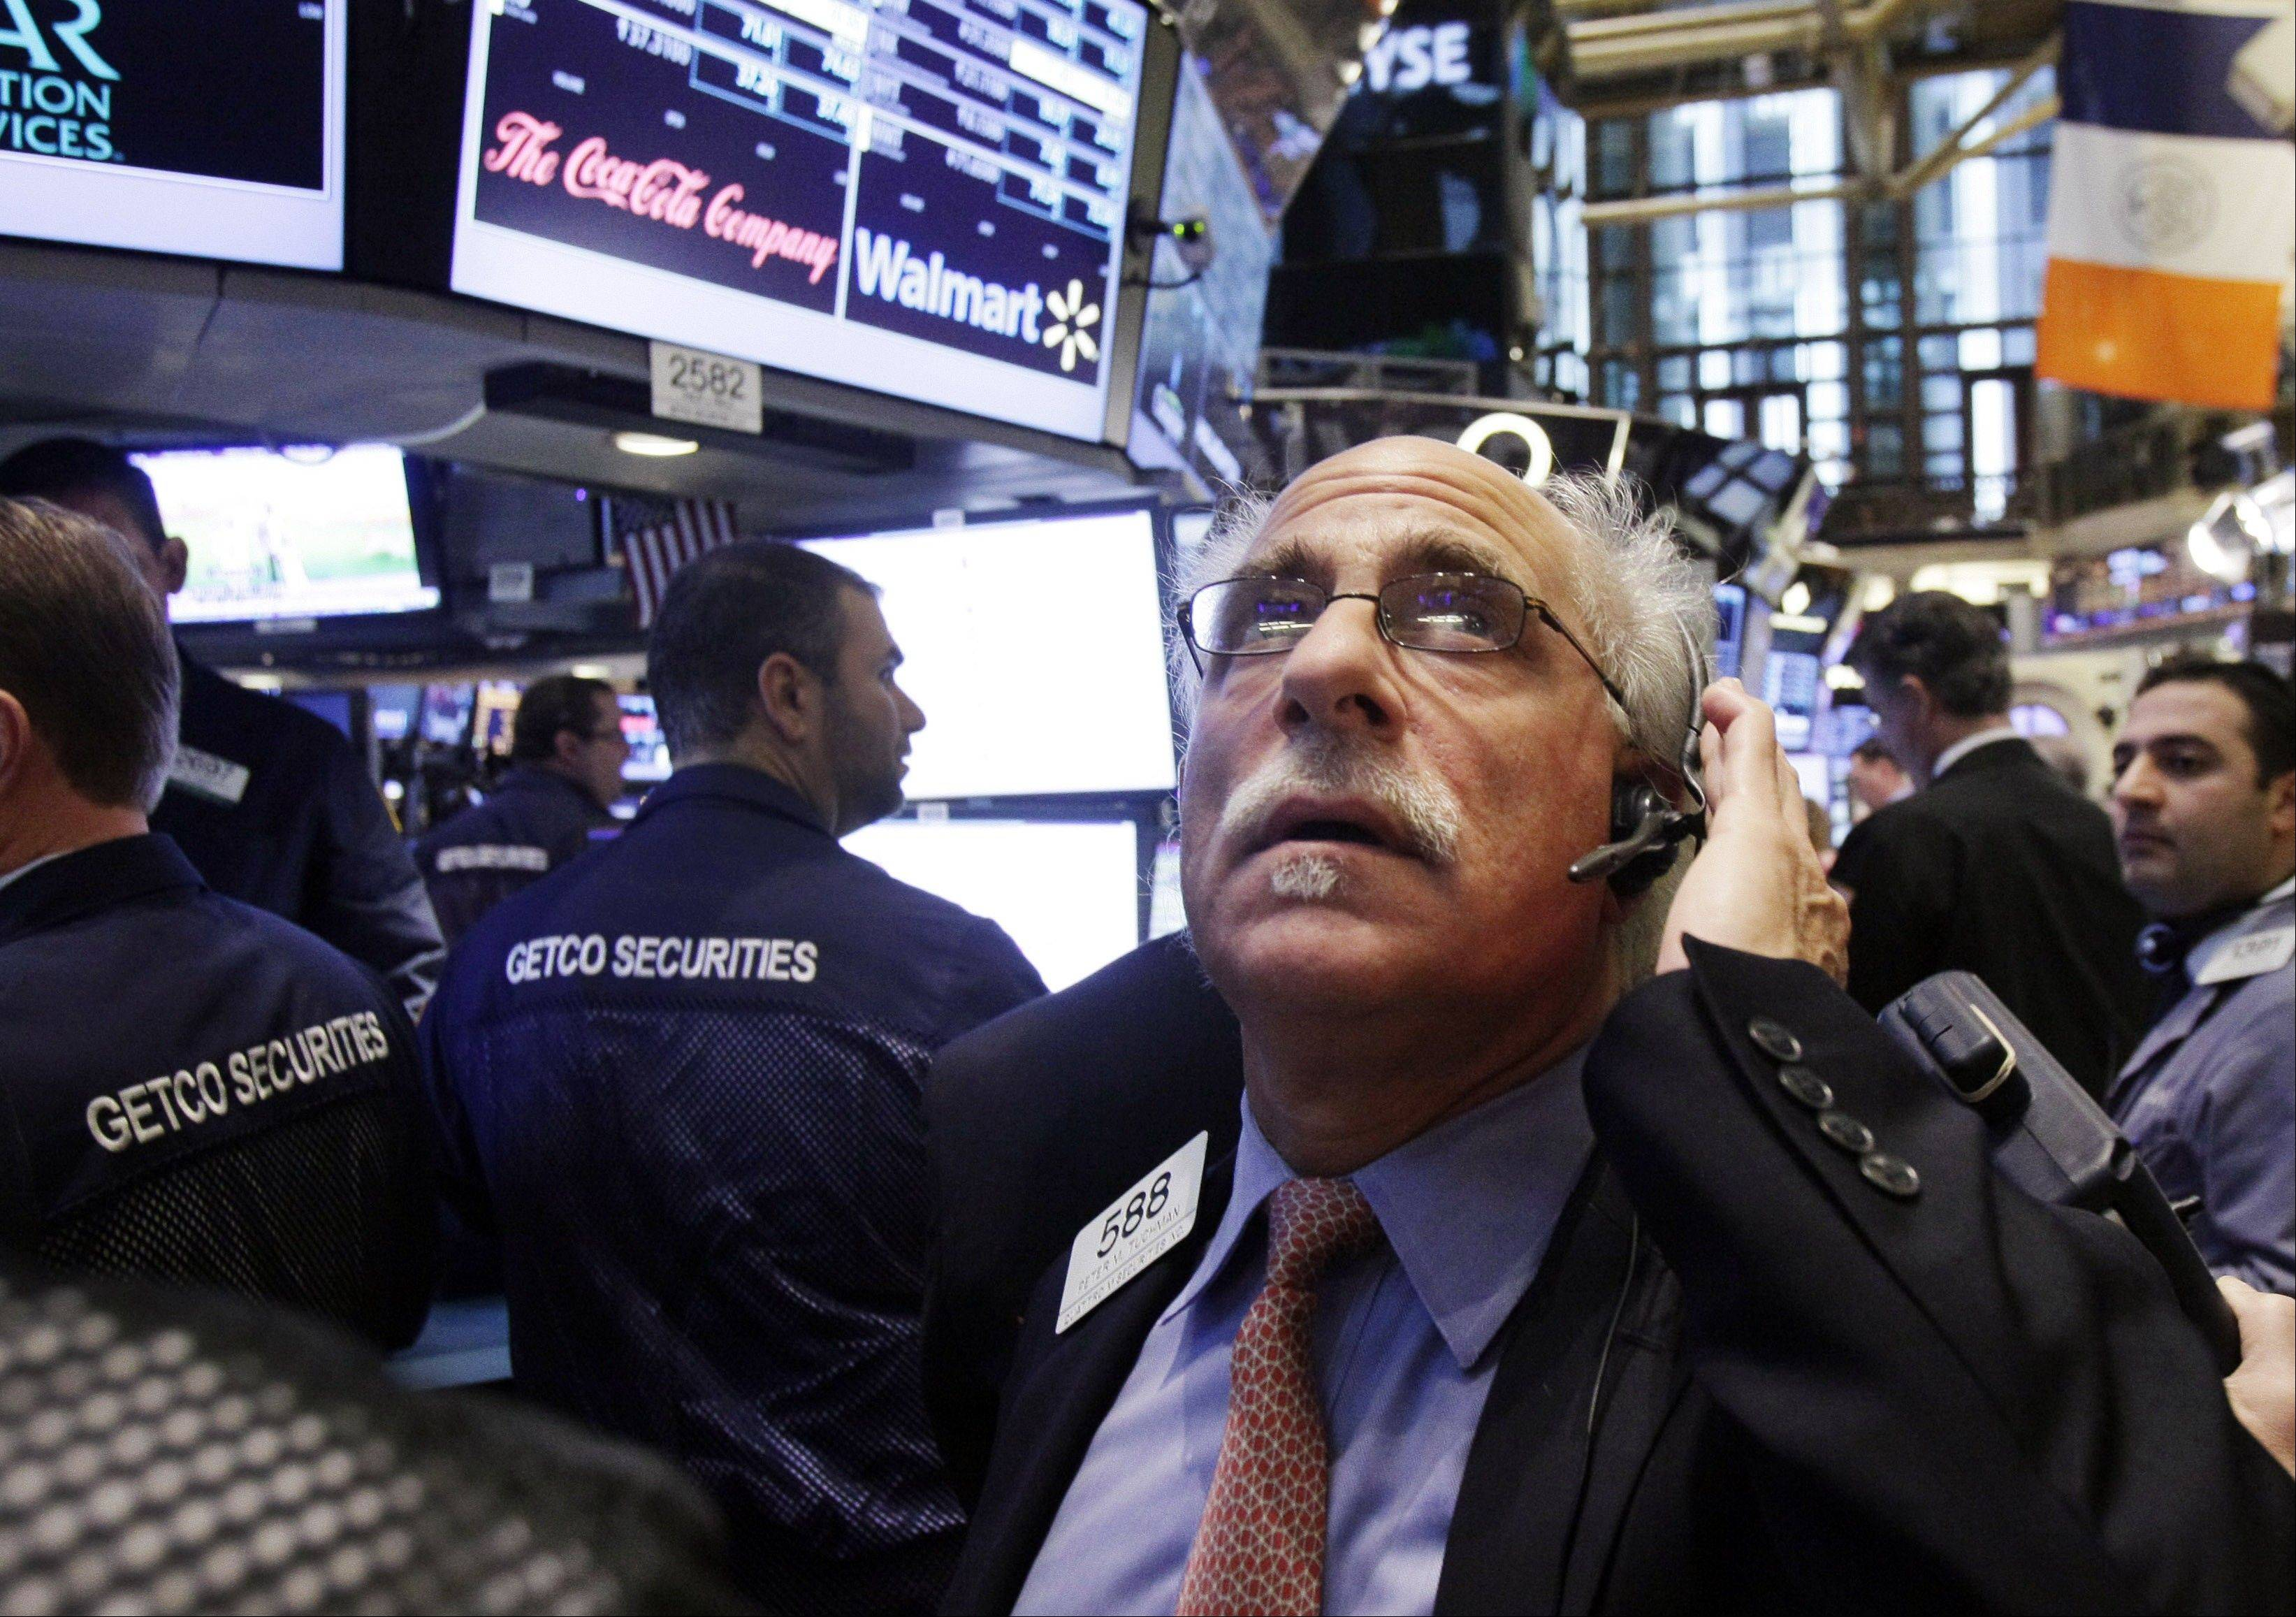 U.S. stocks advanced, after the longest weekly rally in the Standard & Poor's 500 Index since August, as economic data in China beat estimates and investors watched the latest developments in American budget talks.